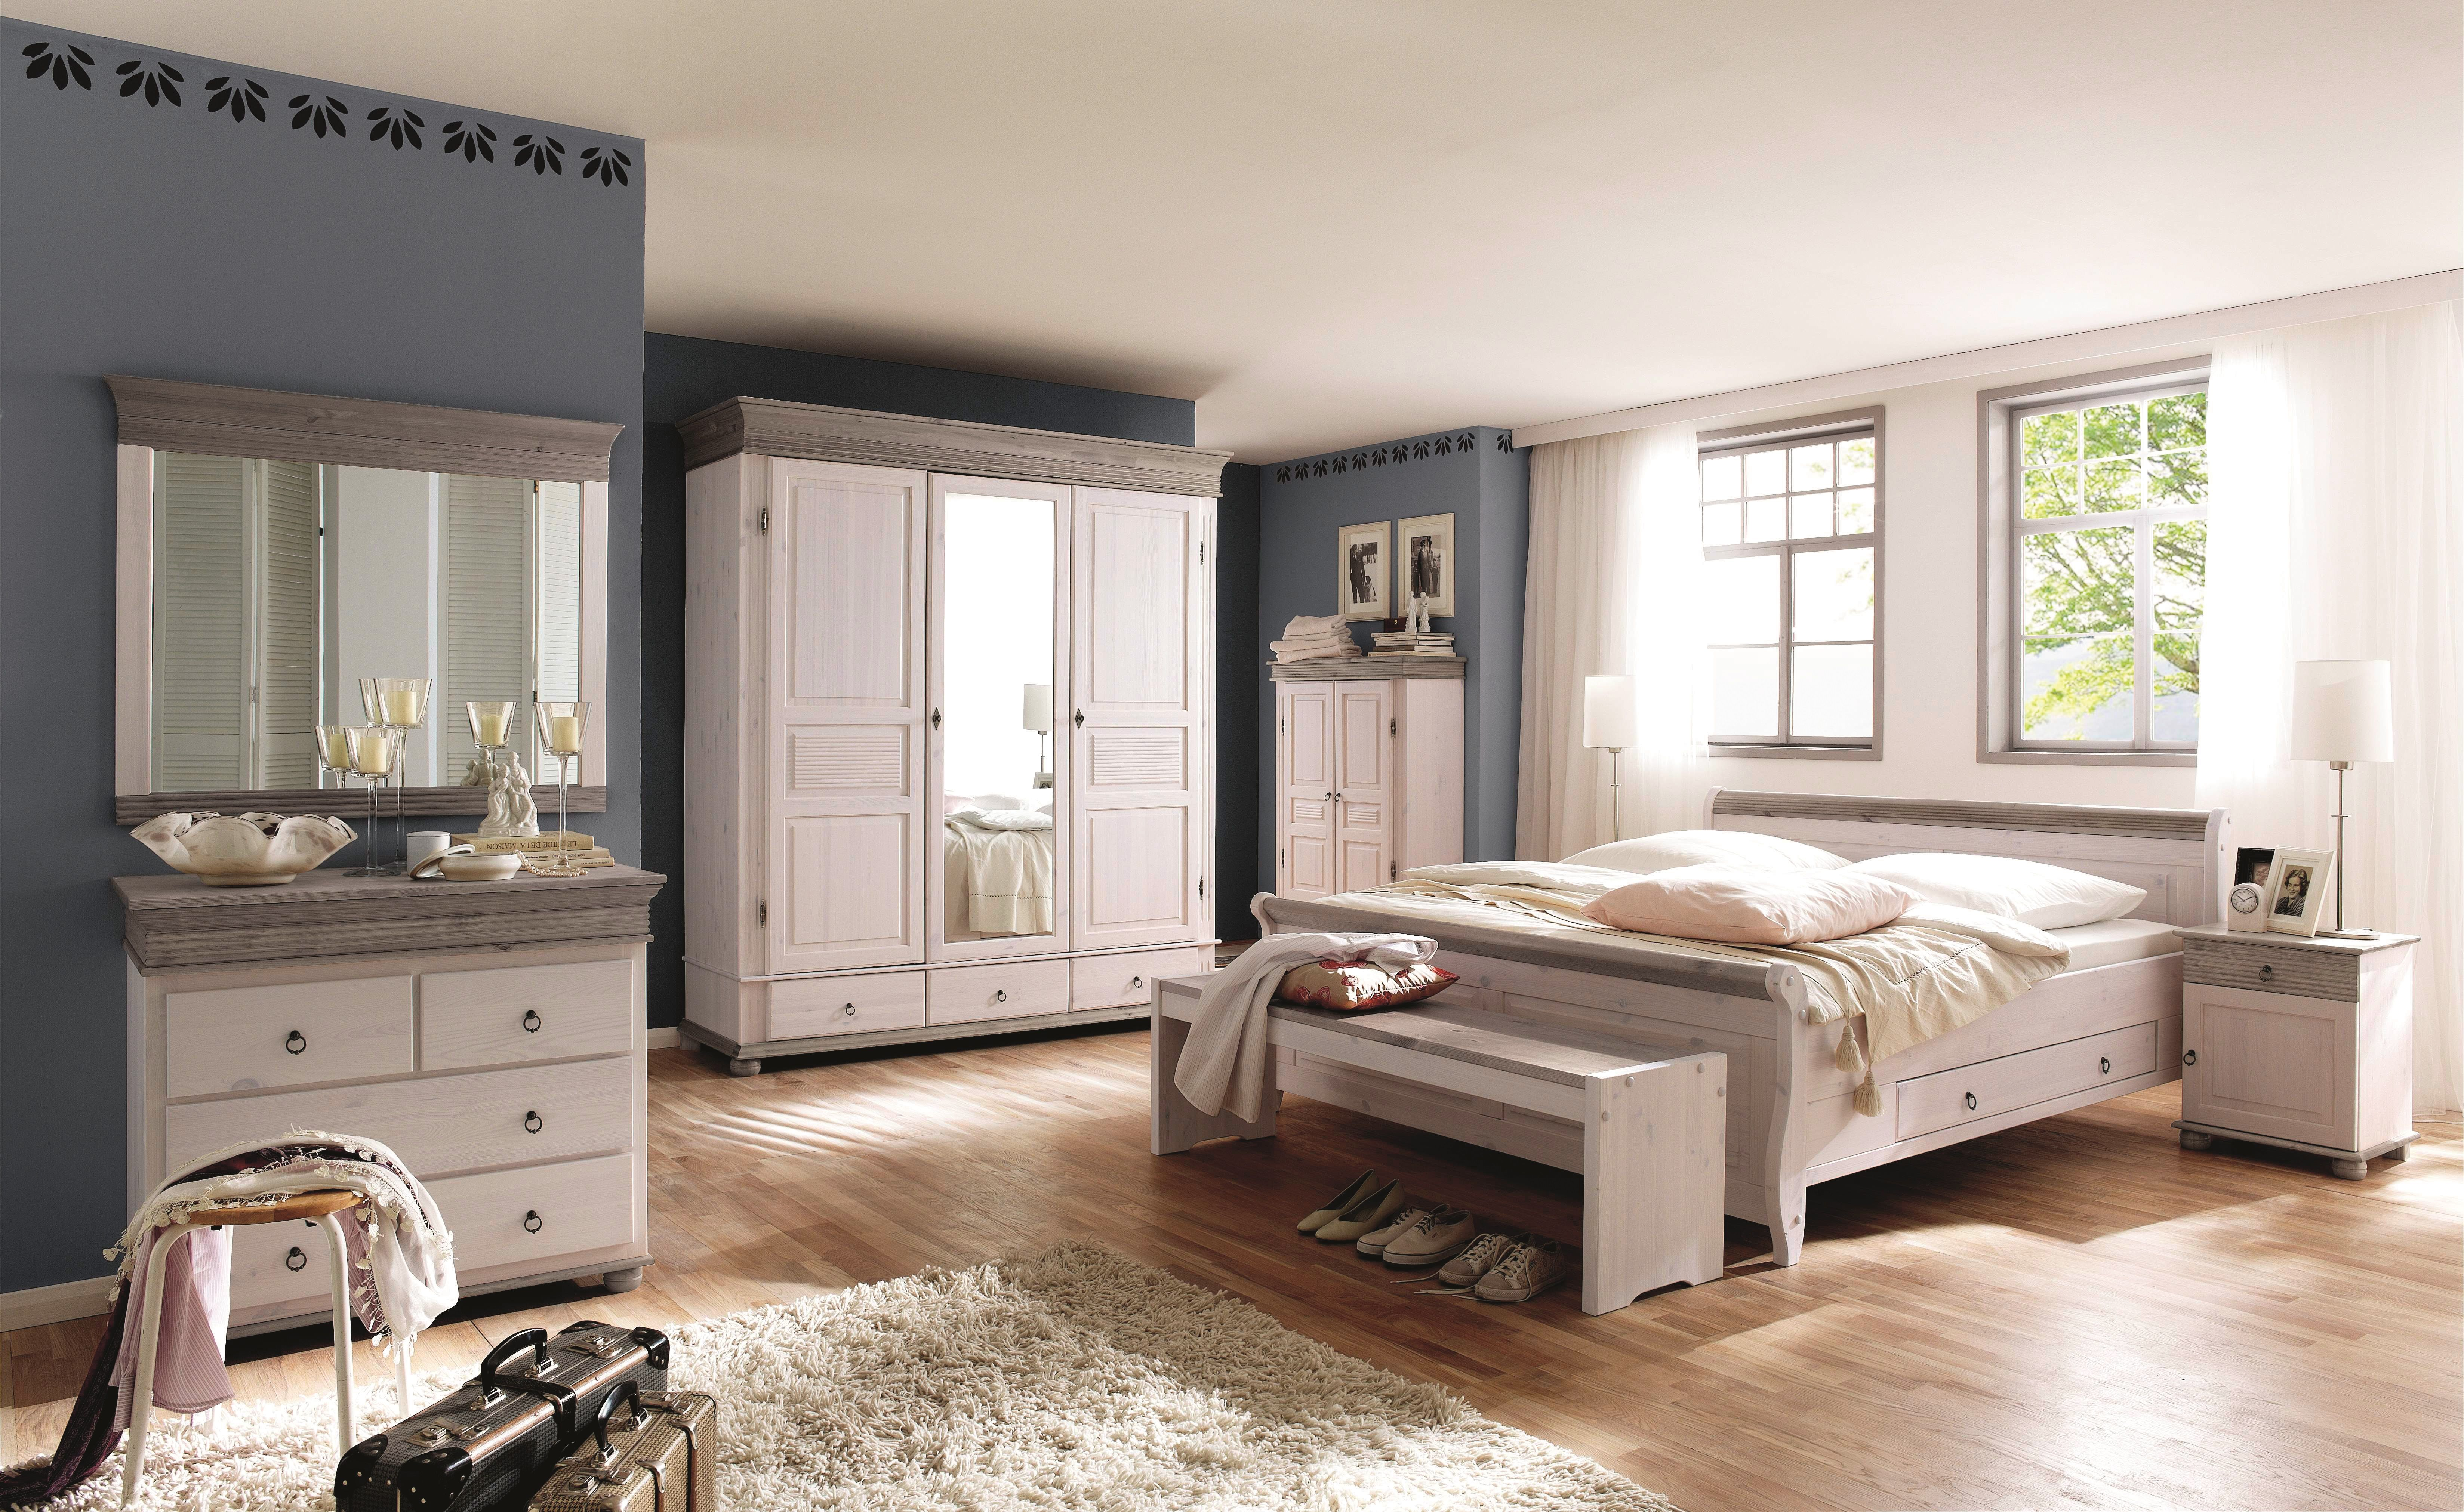 romantisches schlafzimmer im landhausstil kiefer massiv. Black Bedroom Furniture Sets. Home Design Ideas